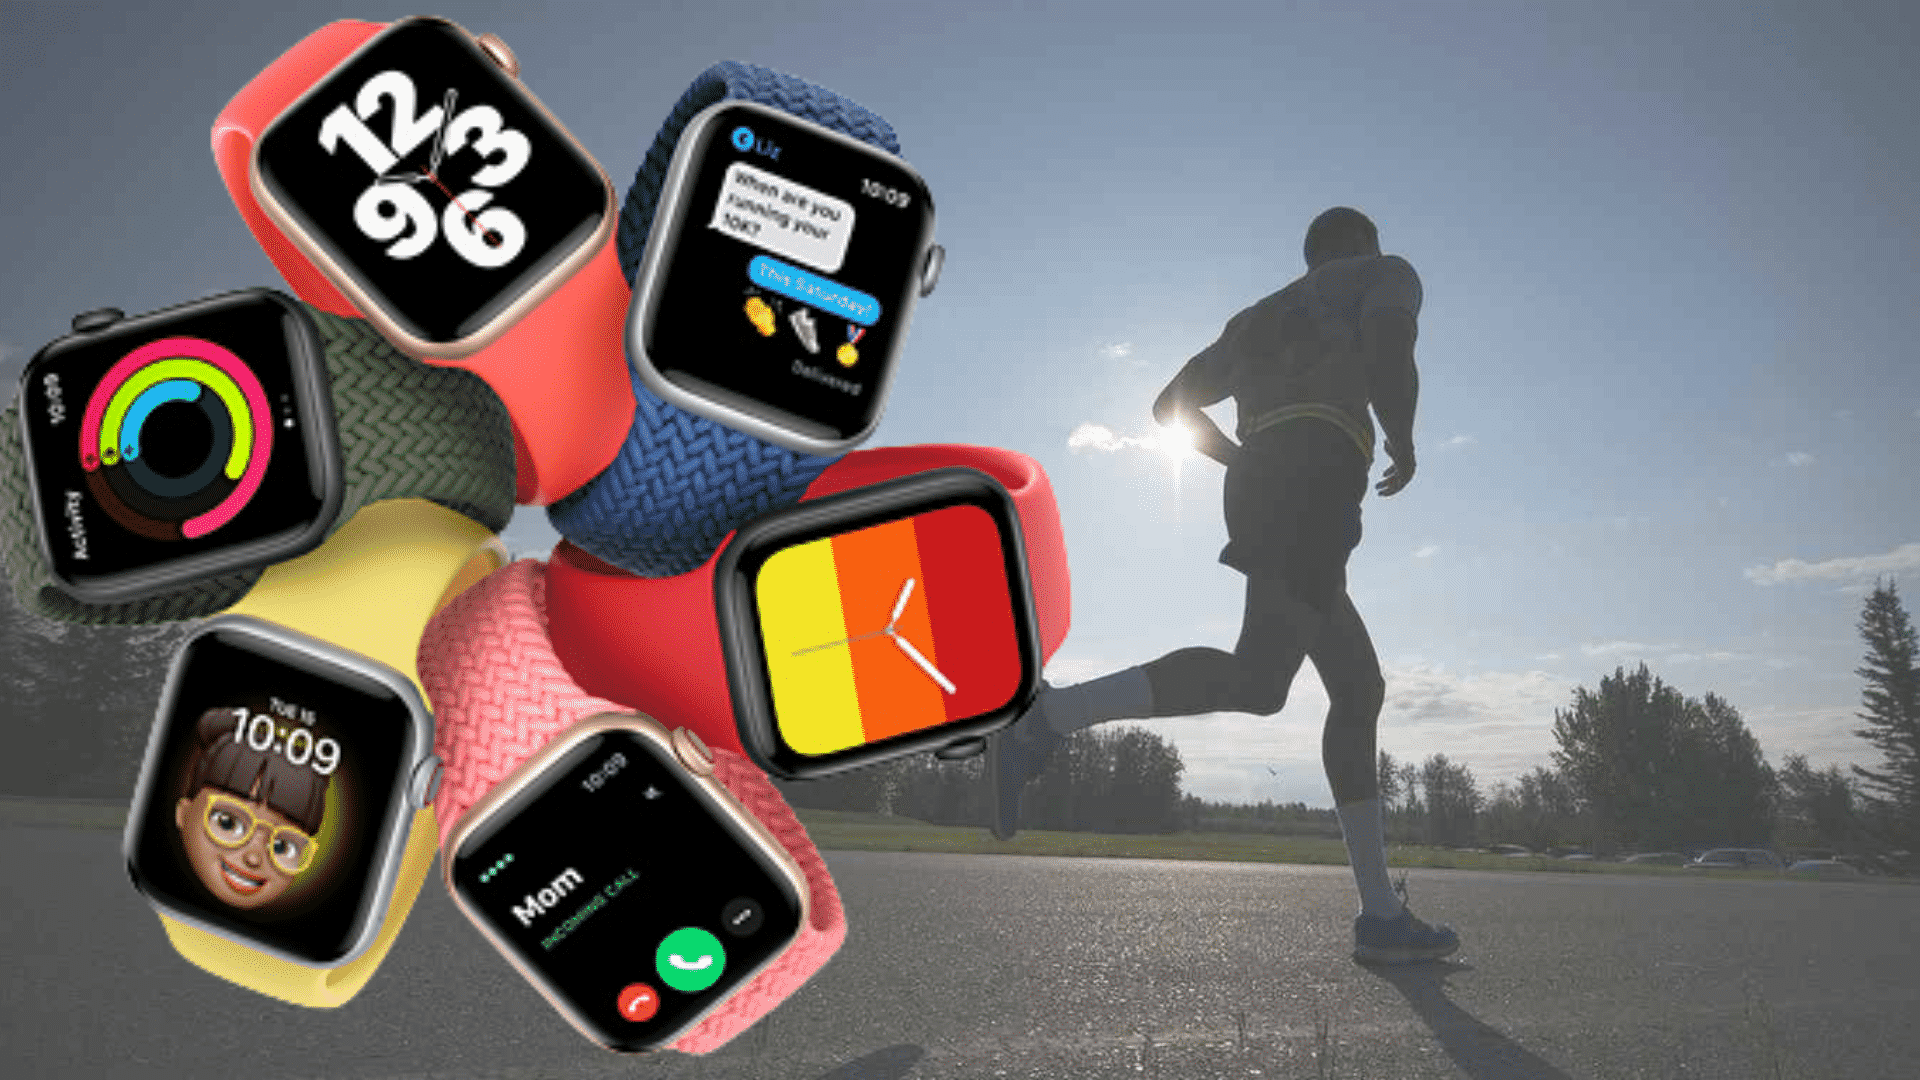 Top 5 Best Smartwatch and Fitness trackers.